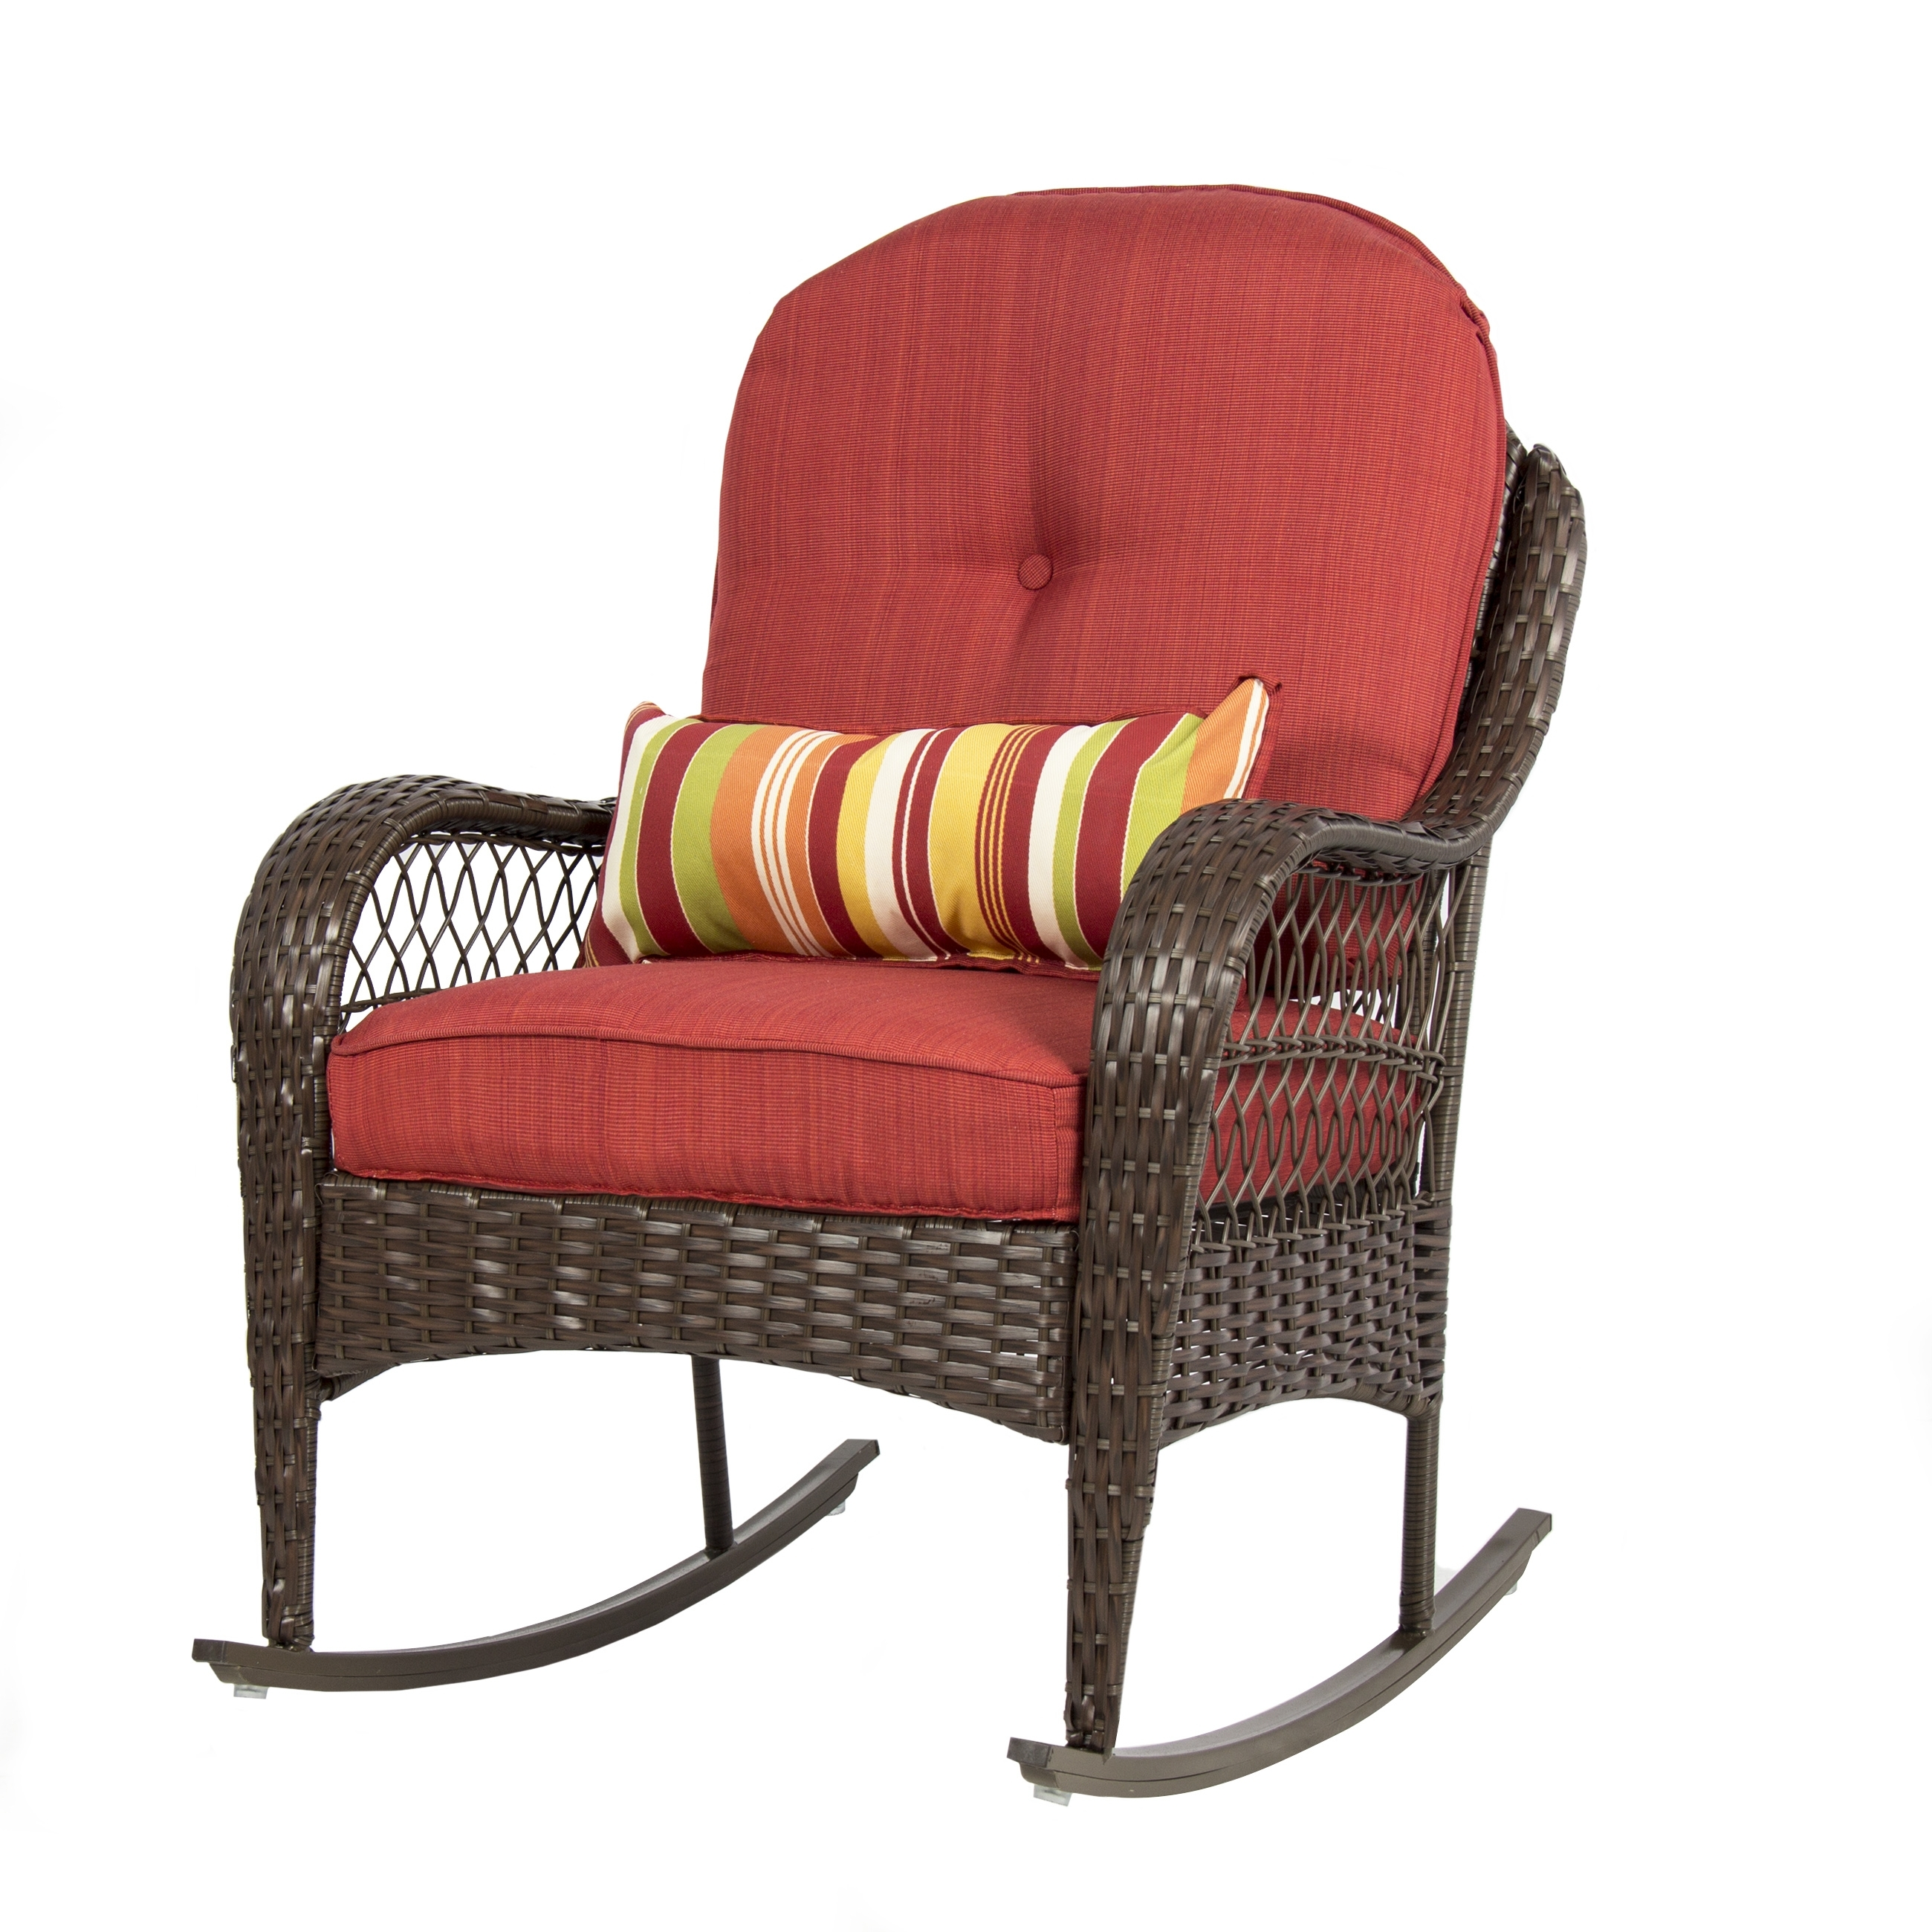 Recent Bestchoiceproducts: Best Choice Products Wicker Rocking Chair Patio Regarding Red Patio Rocking Chairs (View 10 of 20)